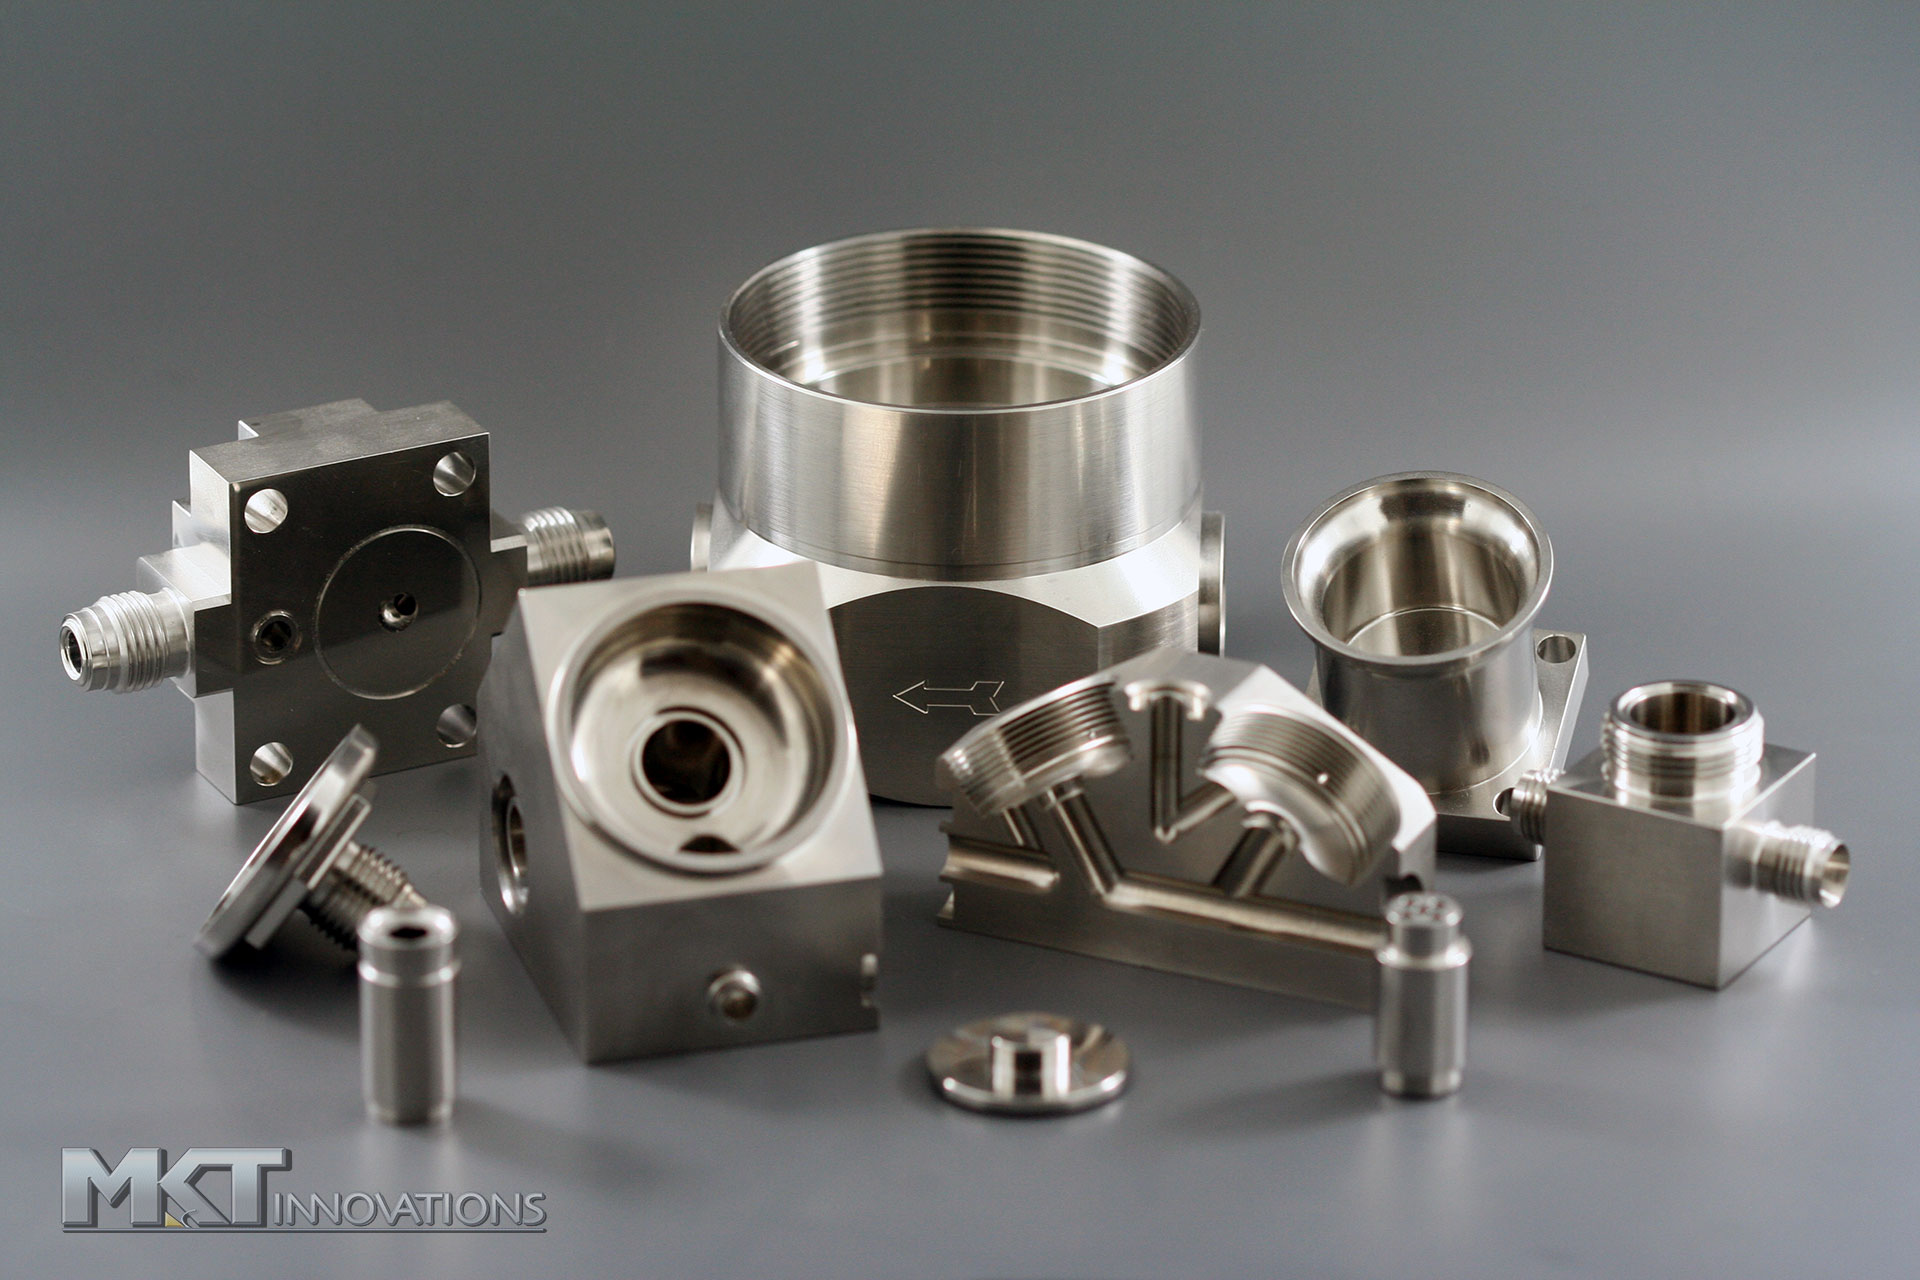 MKT-INNOVATIONS-CNC-MACHINING-High-Purity-1.jpg